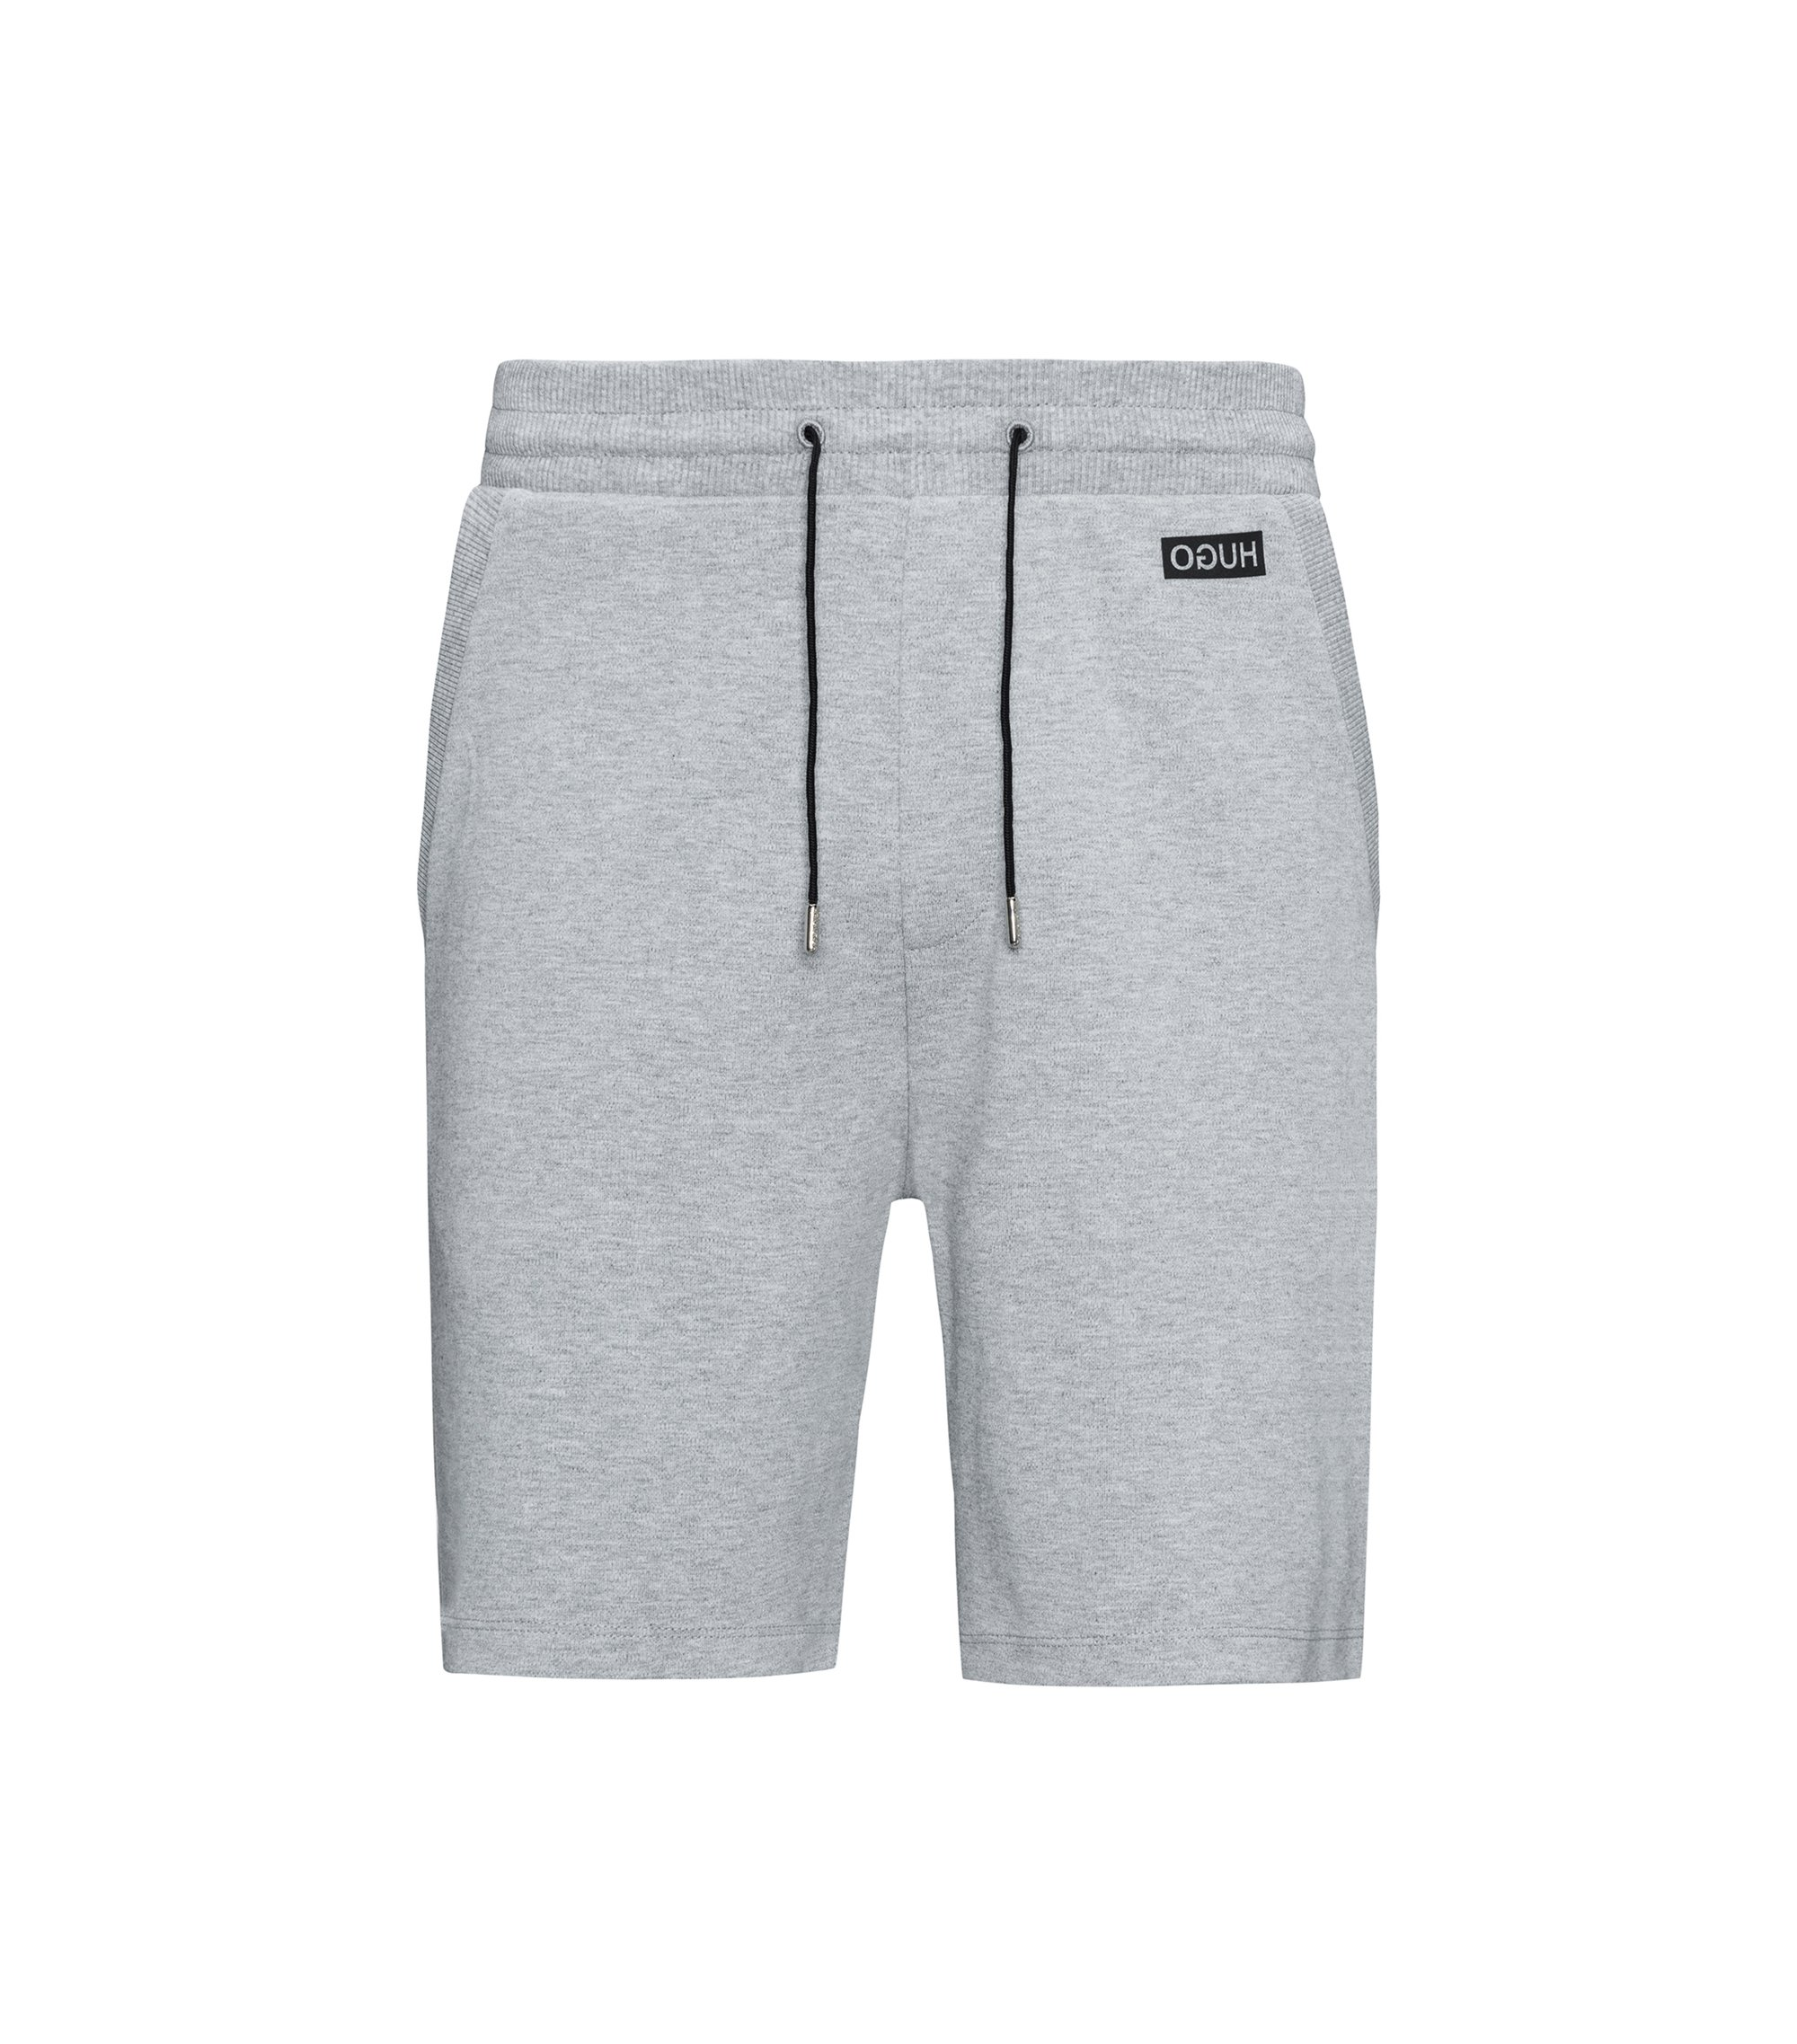 Drawstring shorts in interlock cotton, Grey